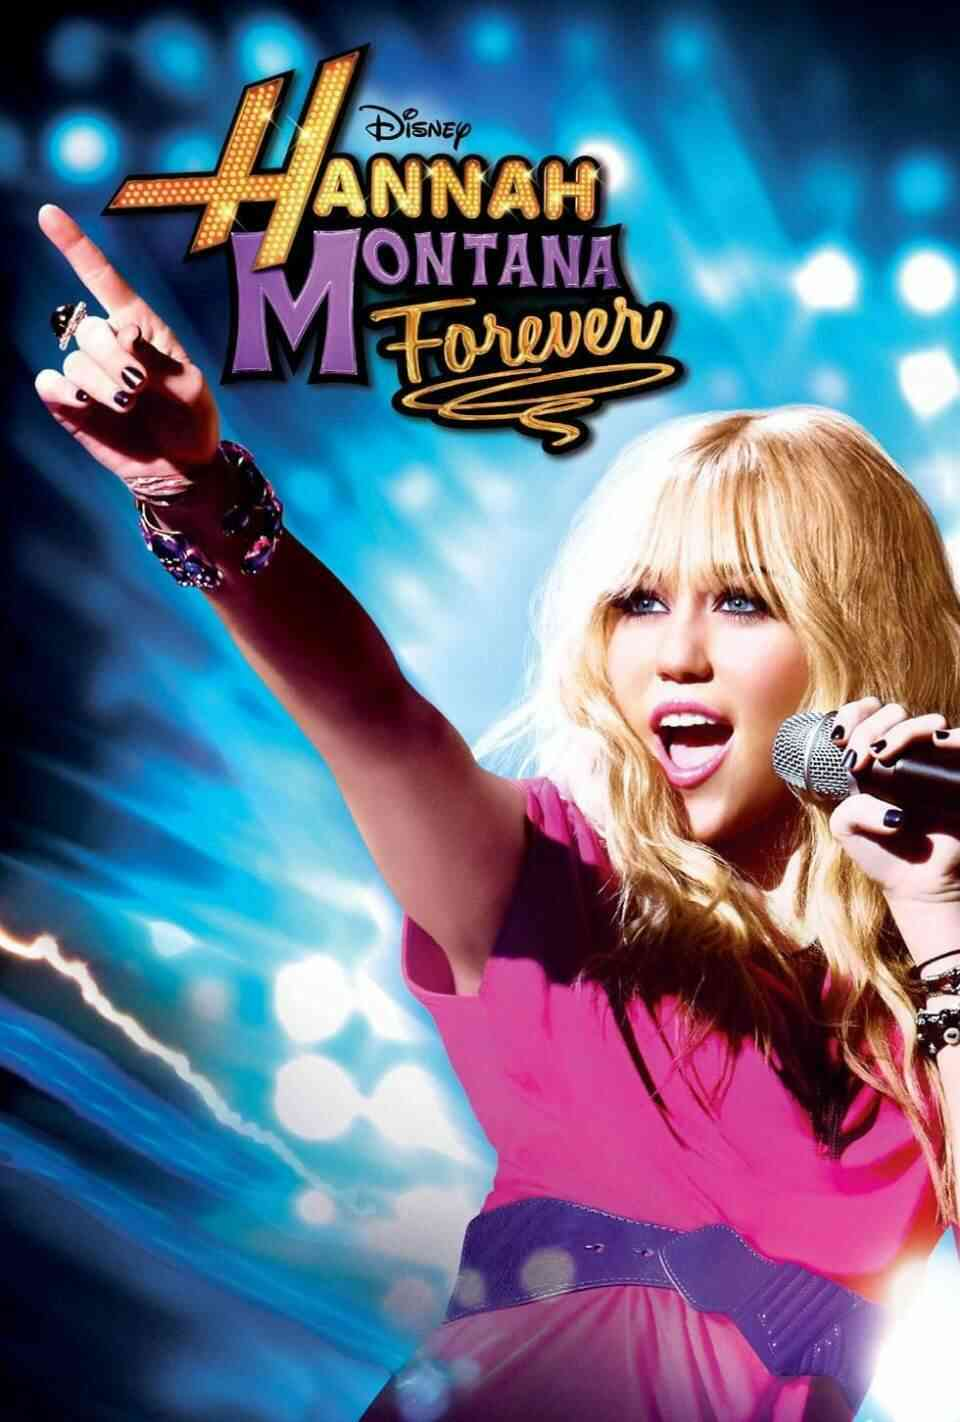 Hannah Montana: 101: Lilly, Do You Want to Know a Secret? Poster